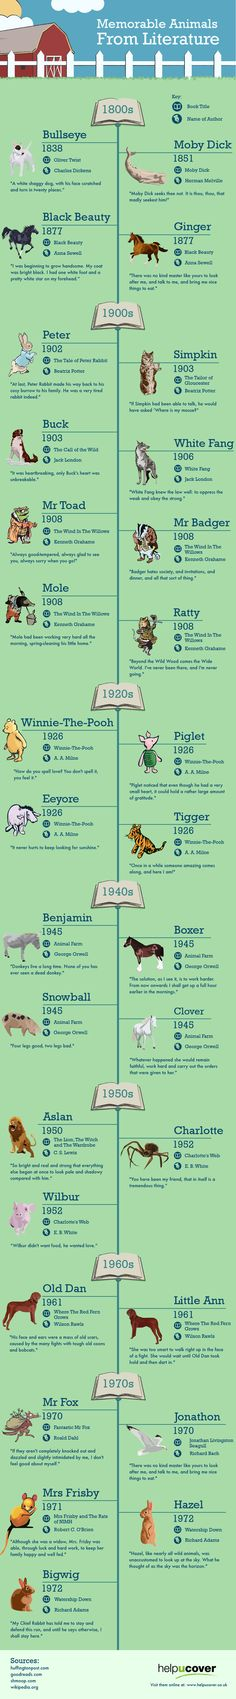 BIGWIG! My favorite character of all time. <3 Memorable animals from literature